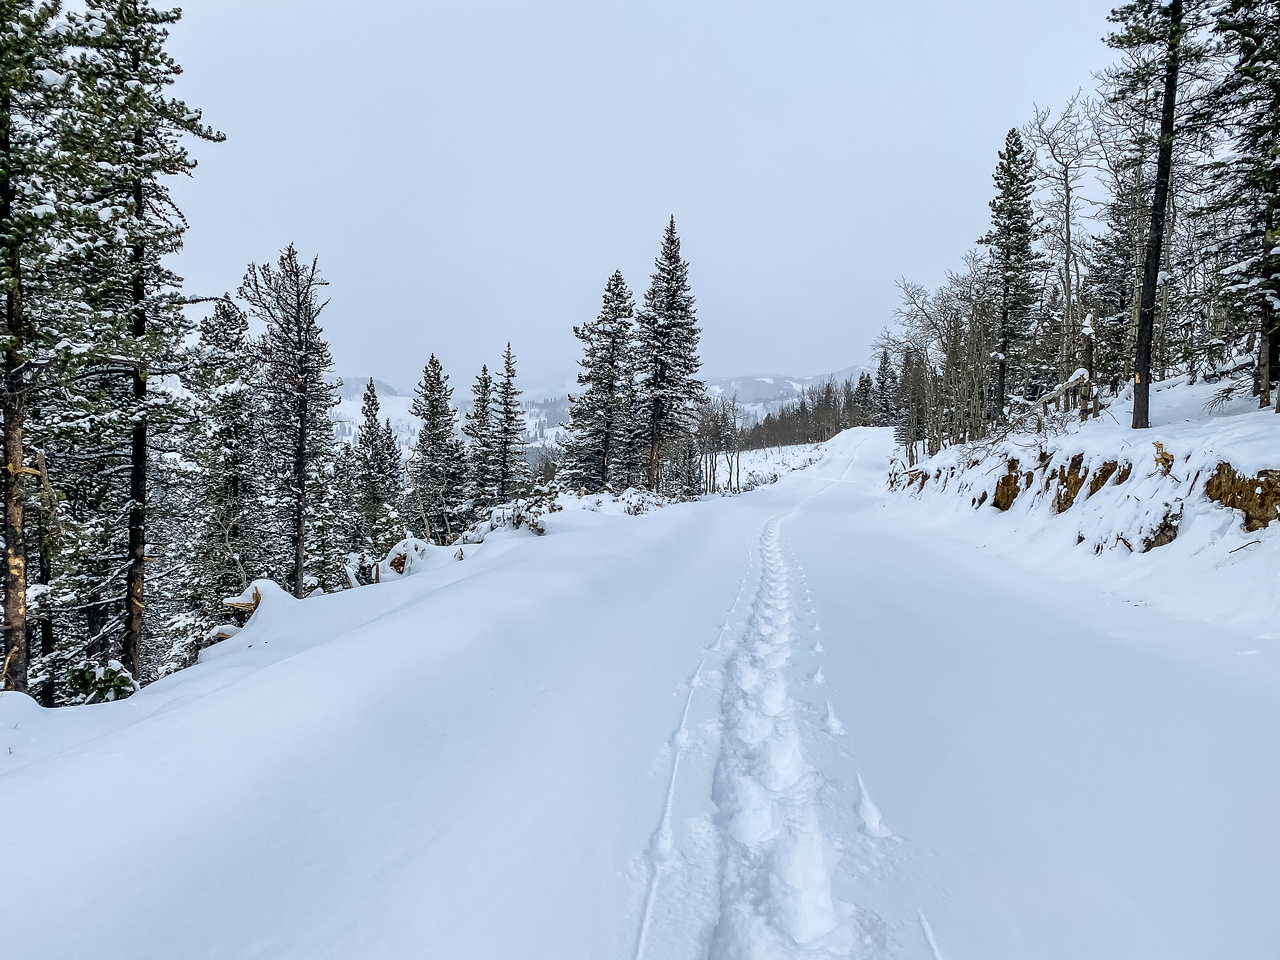 Following my approach track along the Blue Bronna logging road.